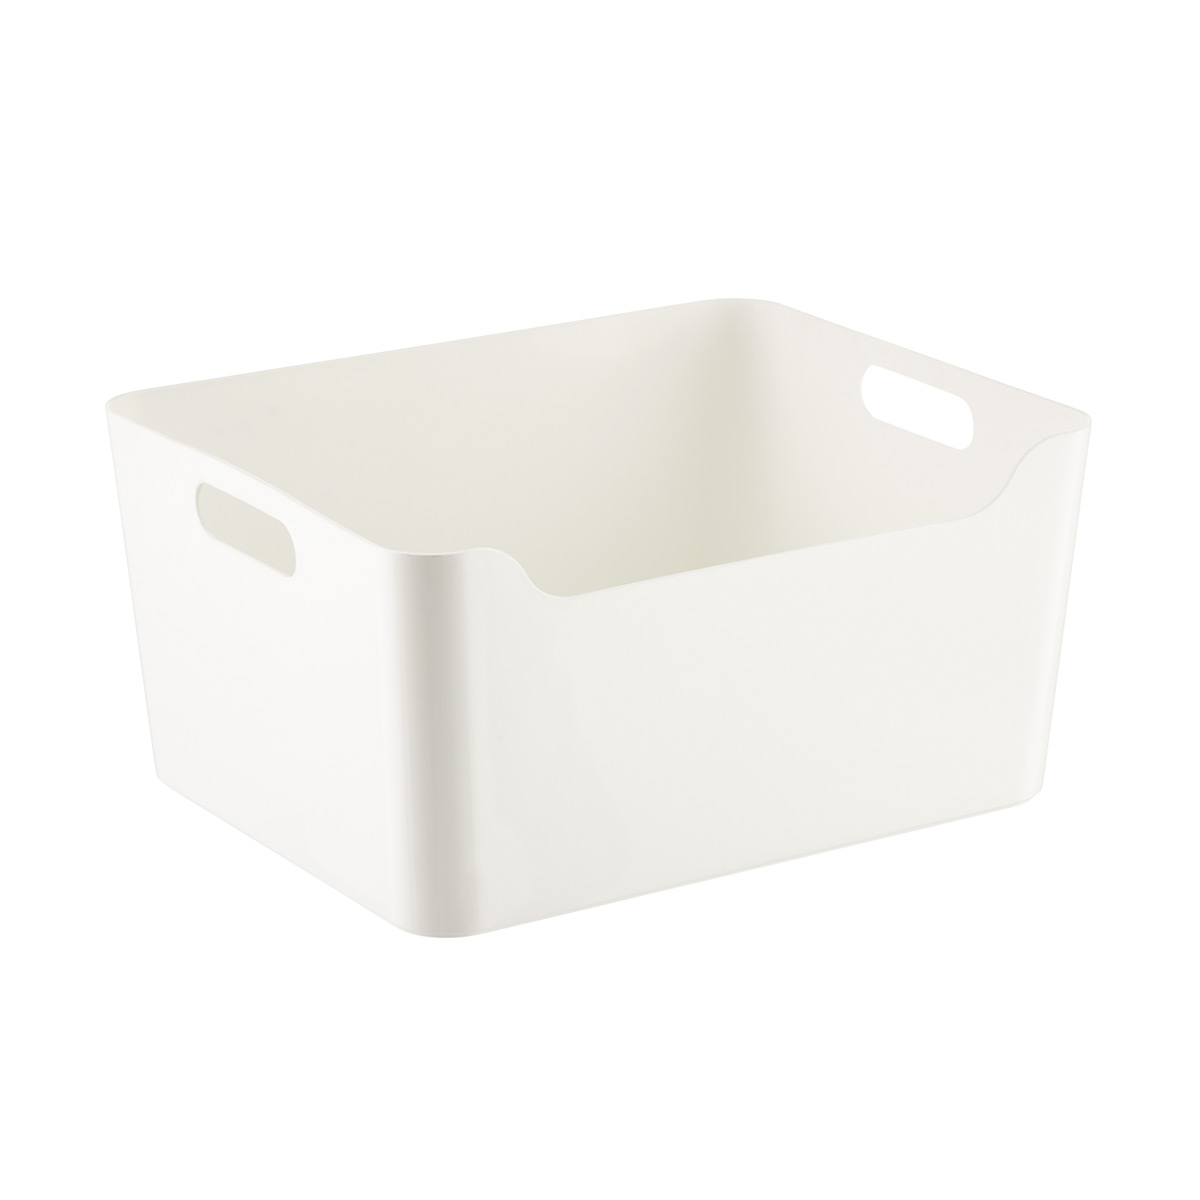 Plastic Bins - Dude, I use these alll over my home! They come in especially handy in the kitchen and bathroom where spills happen. Use them to corral your canned goods, your skincare products, or anything else you want to keep together! The best part? They're super affordable and you can see them HERE